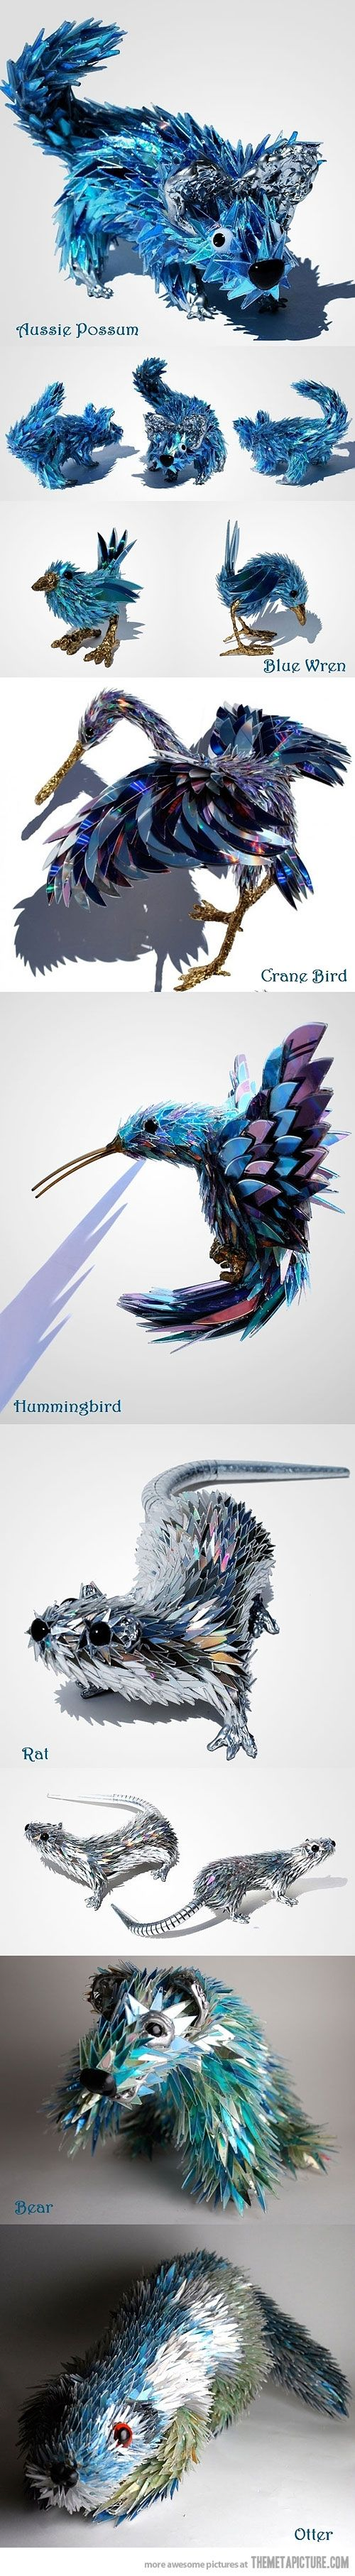 Sculptures made from shattered cds, Sean Avery, http://seanavery.deviantart.com/gallery/#